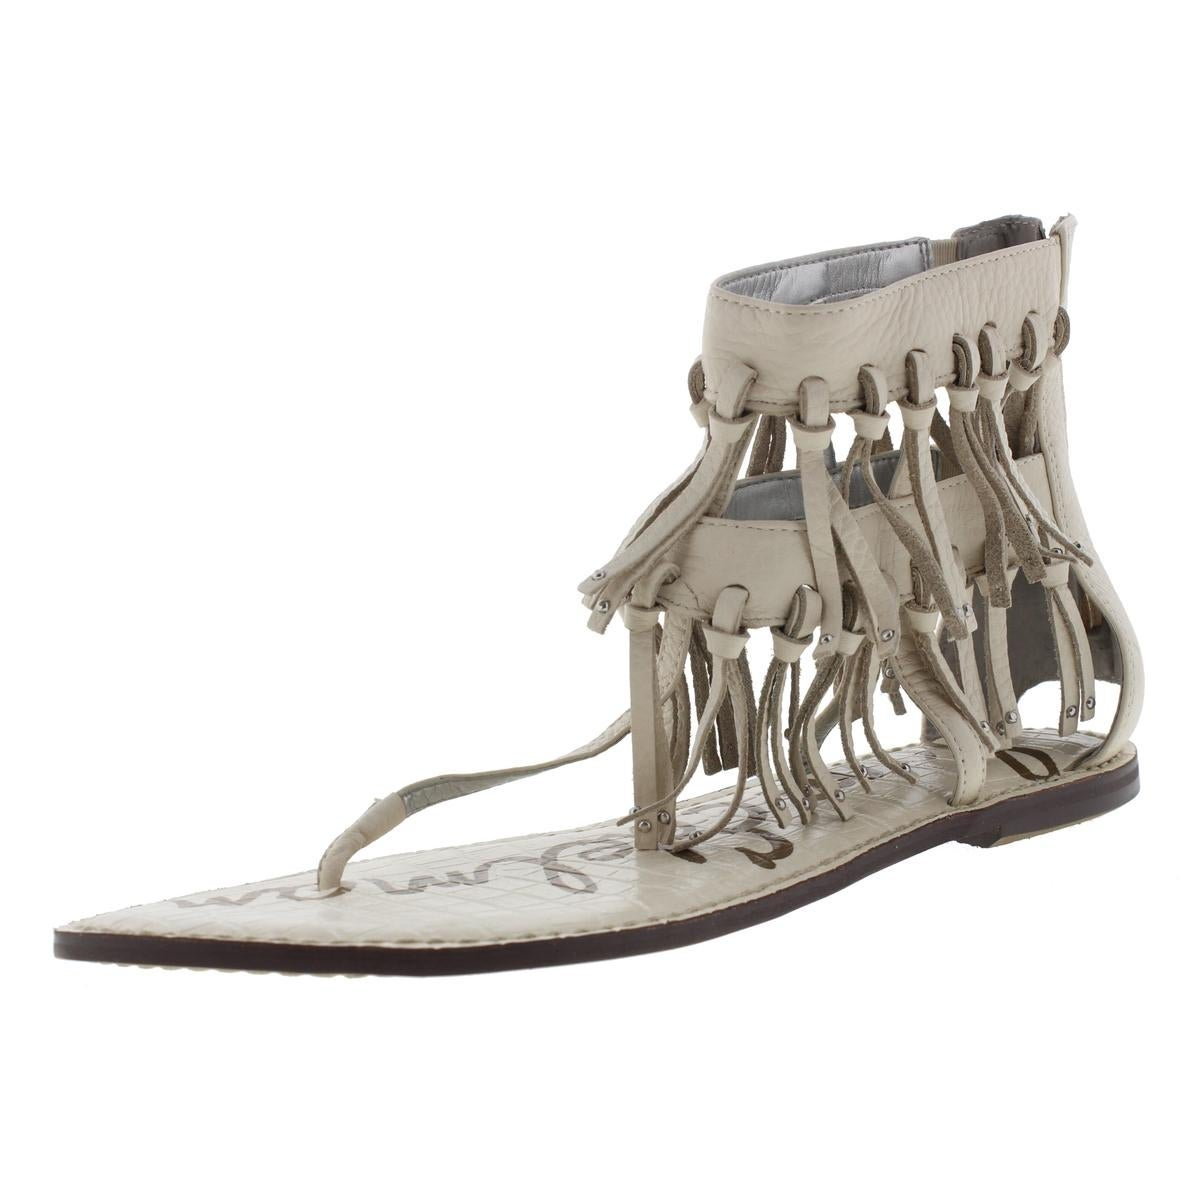 969584137ba48 Shop Sam Edelman Womens Griffen Gladiator Sandals Leather Fringe - Free  Shipping Today - Overstock - 13680446